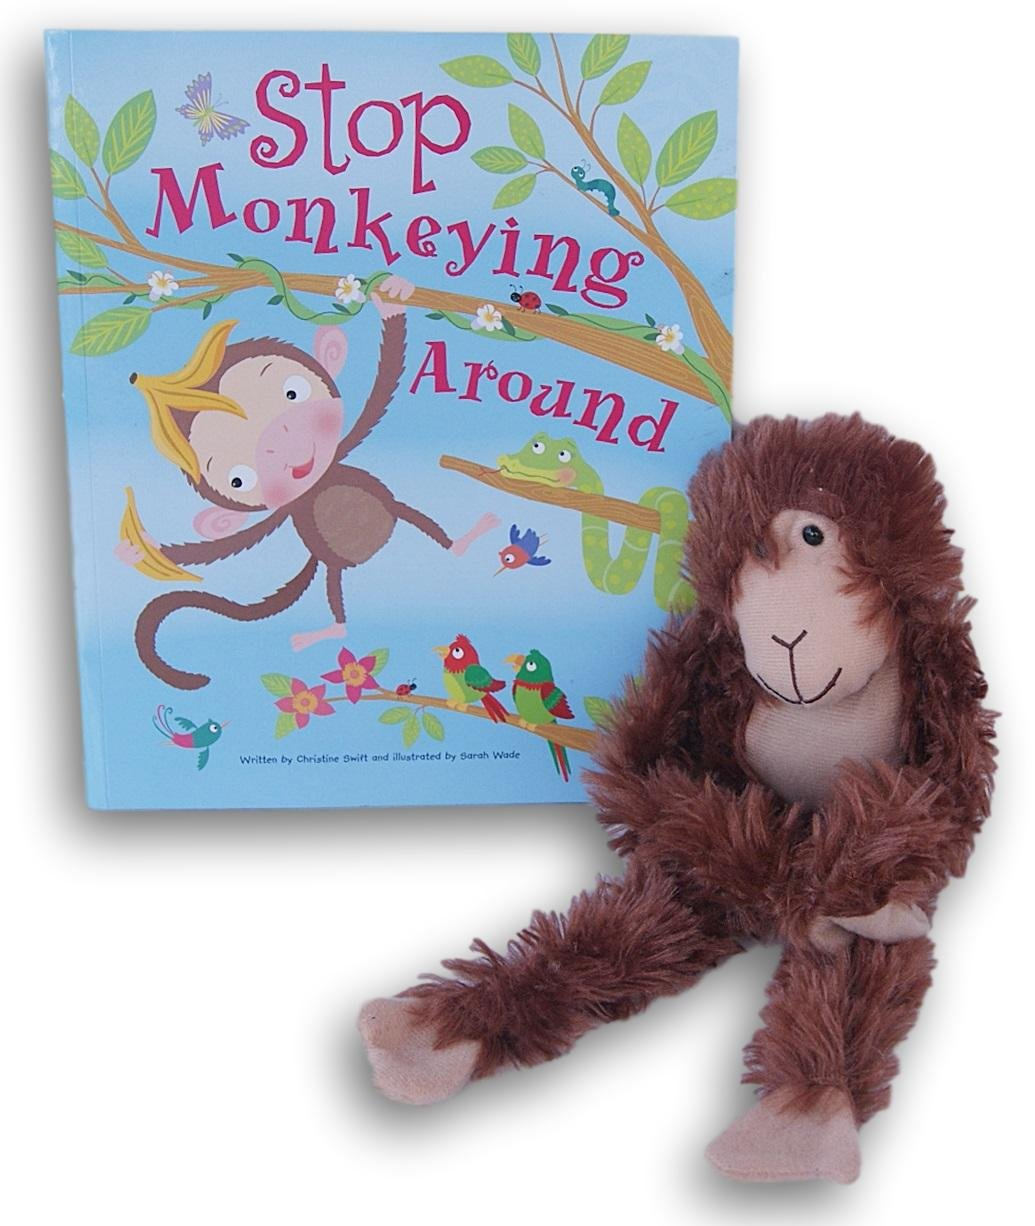 Jumpingデイジーの子のMonkey Plush Toy with Matching停止Monkeying Around Book   B07D9RDK9S